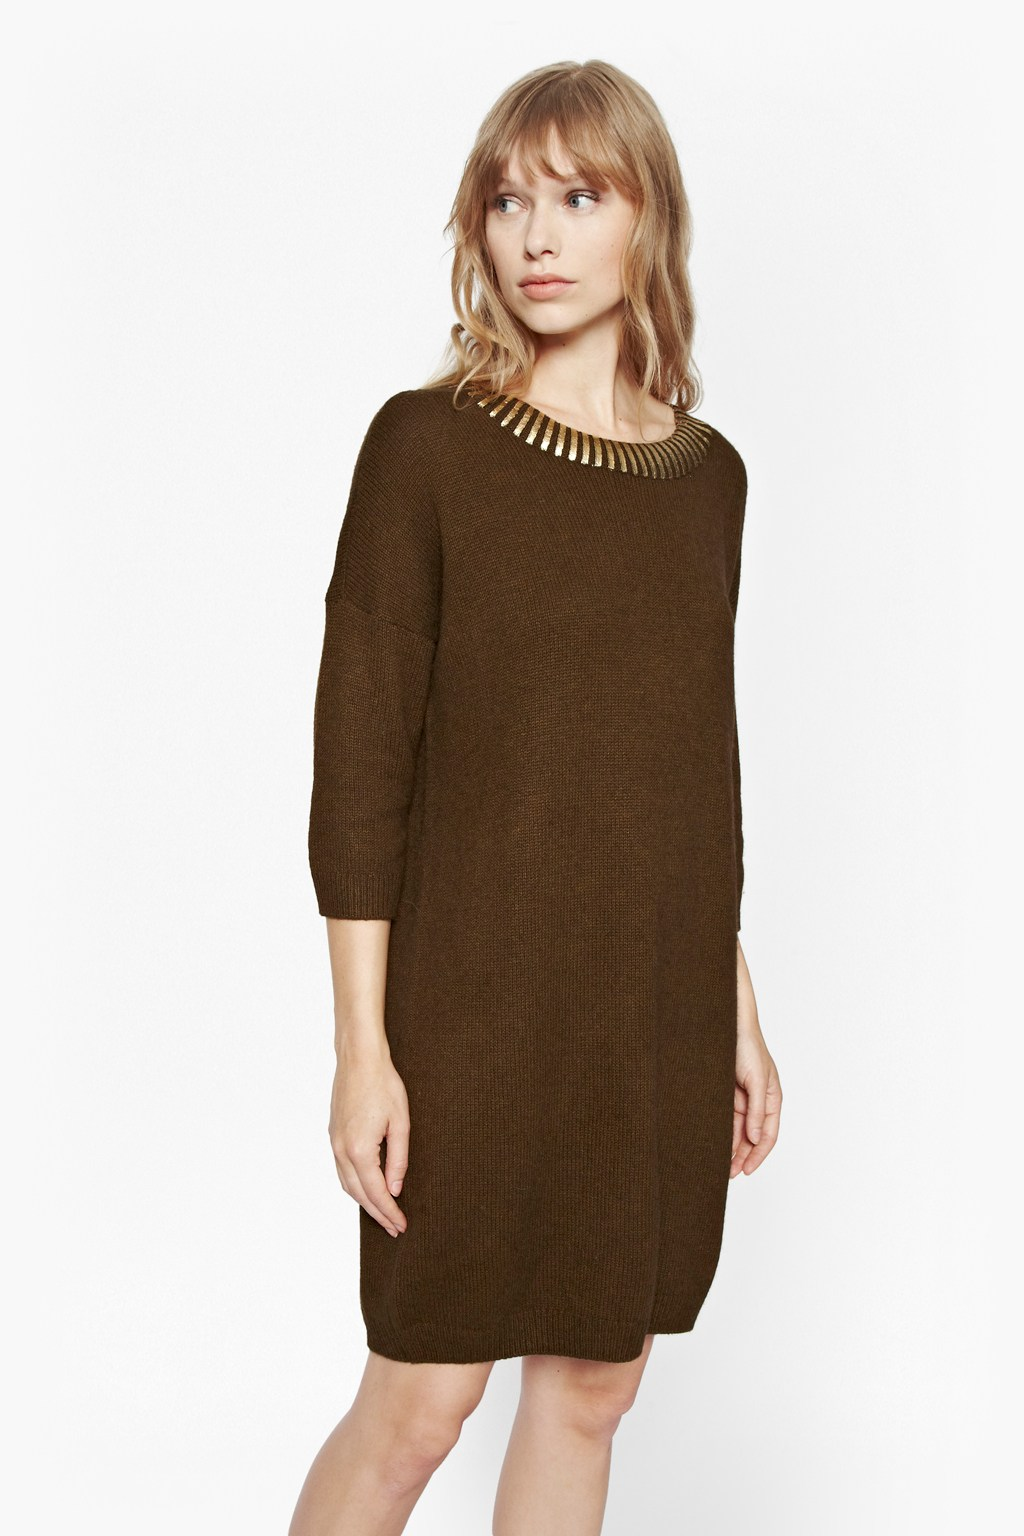 Jumper Dresses For those off duty dressing days when comfort is key, the jumper dress always saves the day! This throw-on-and-go piece is an absolute wardrobe essential no matter the season, so check out our on-trend jumper dresses now and add one of these cosy sweats to your basket.